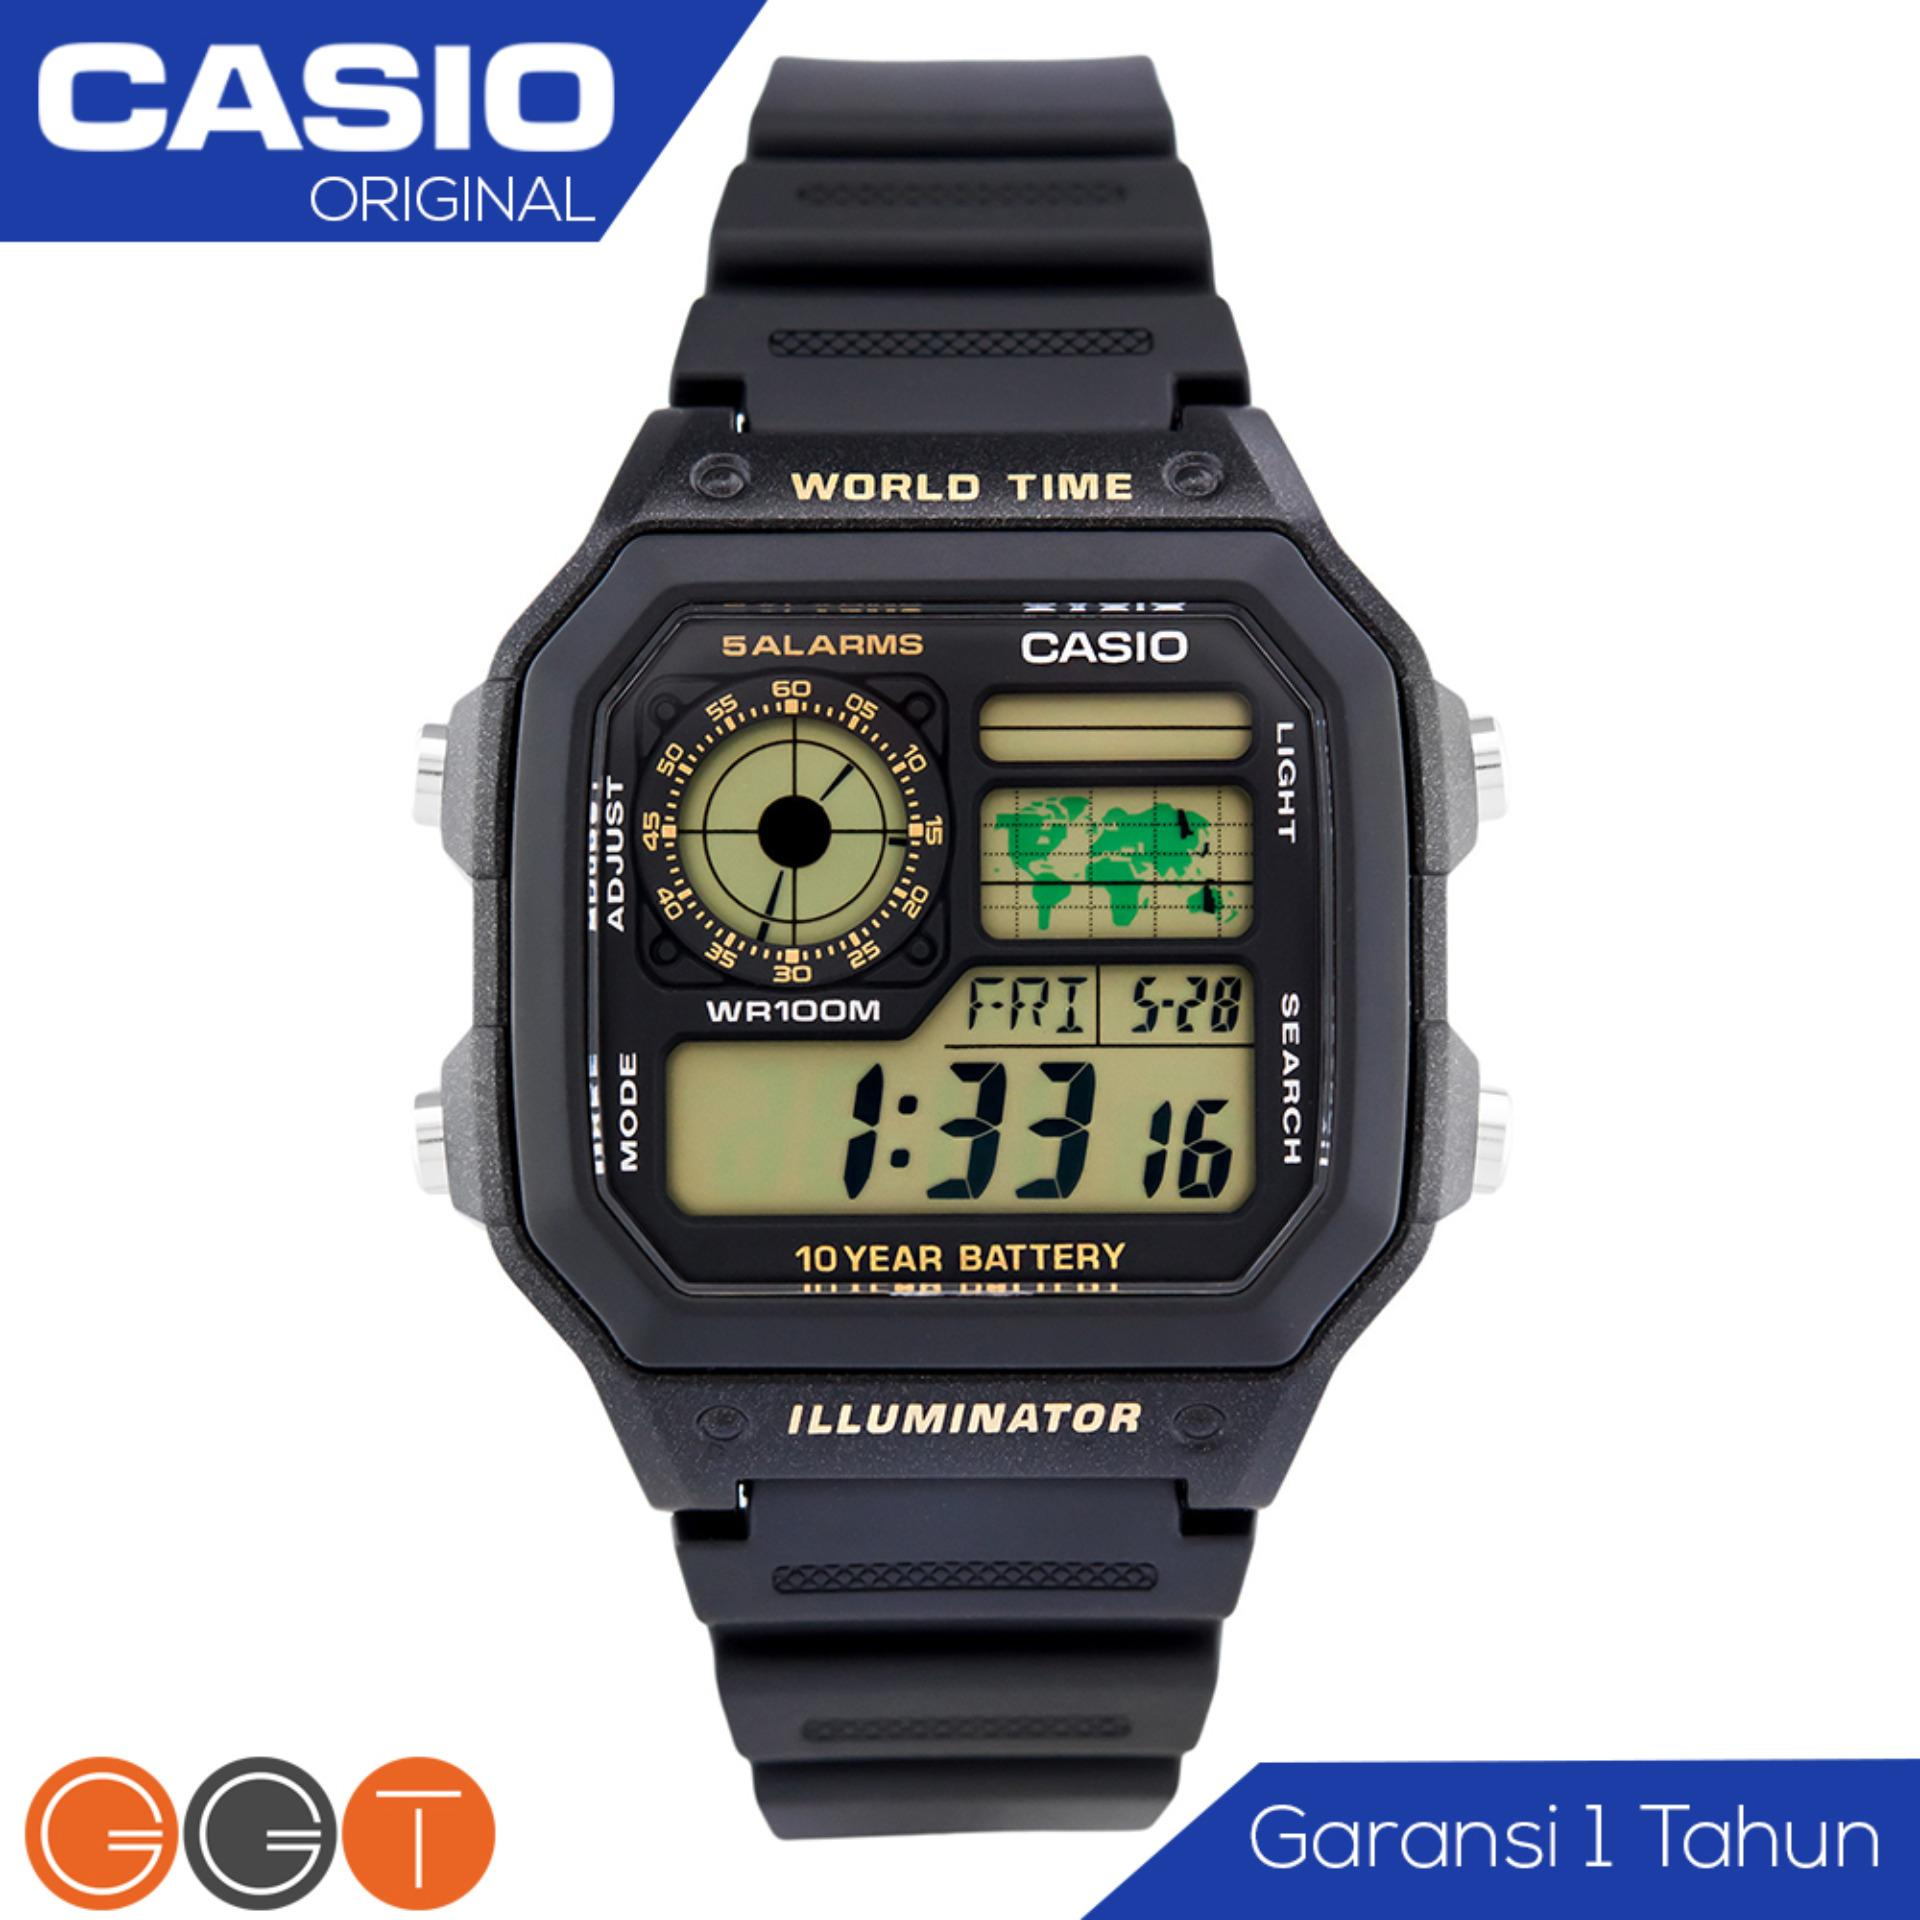 CASIO Illuminator Bond Style - Jam Tangan Pria - Tali Stainless (WHD) / Resin (WH)  - Digital Movement - Silver AE-1200 Promo